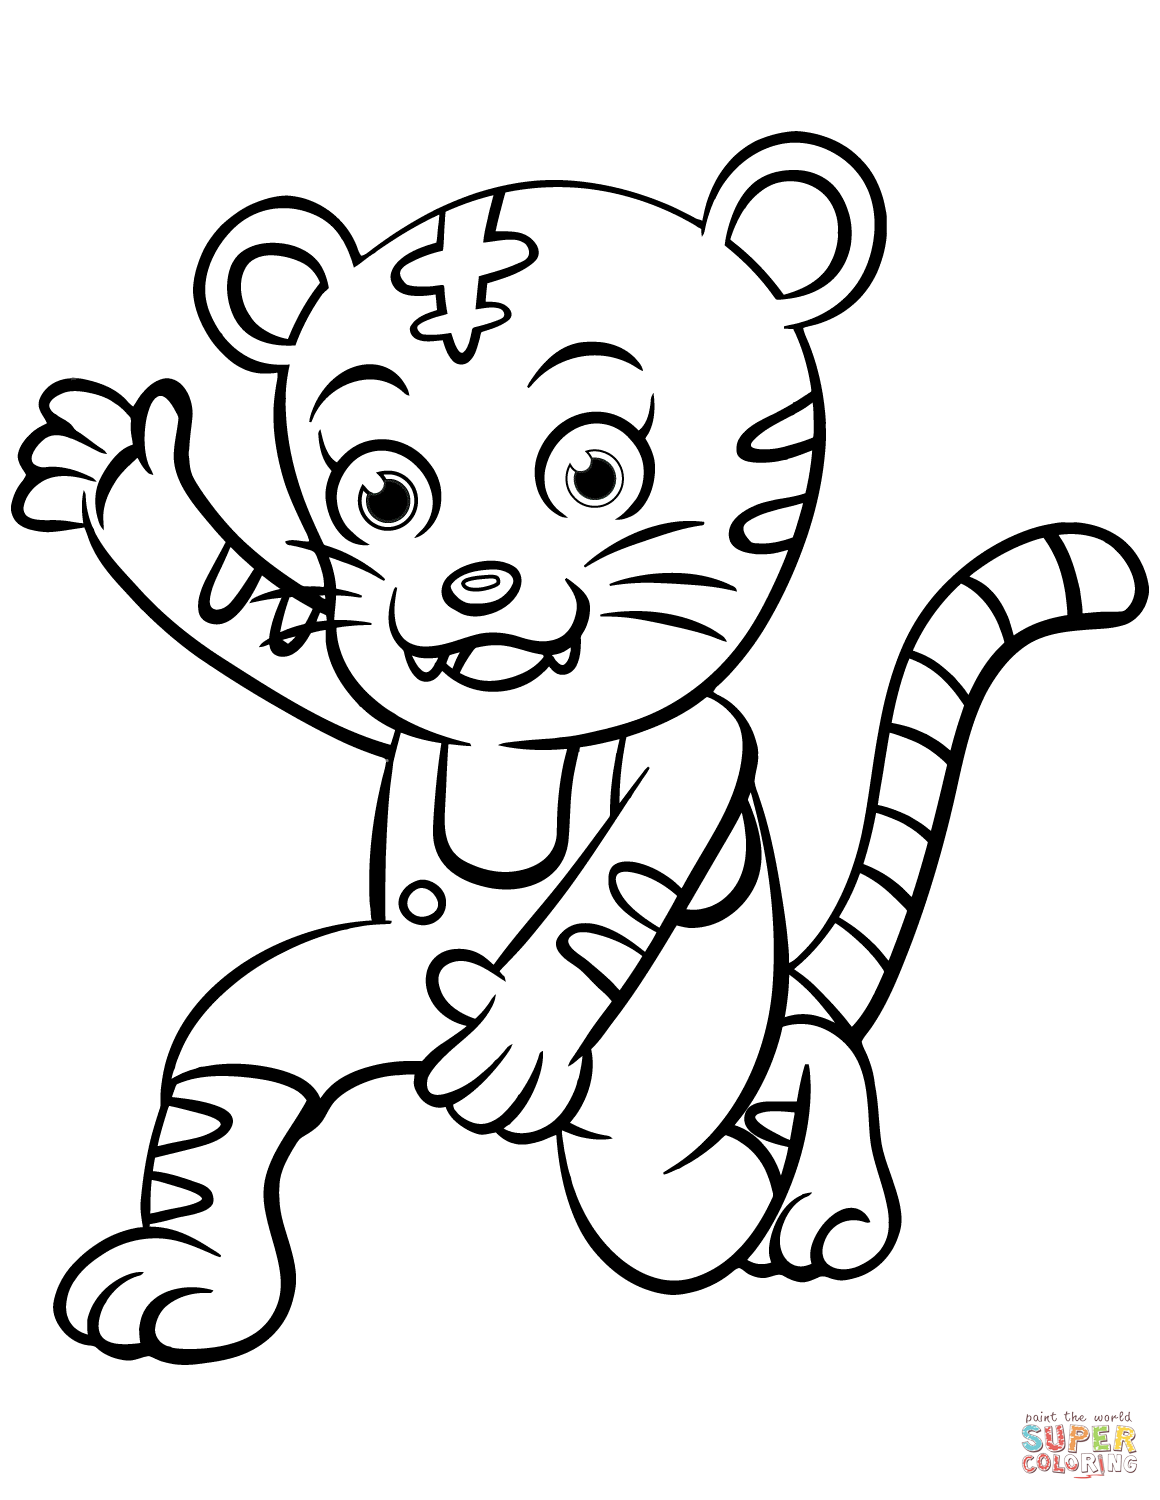 tiger pictures to color tiger coloring pages google search lion coloring pages tiger to color pictures